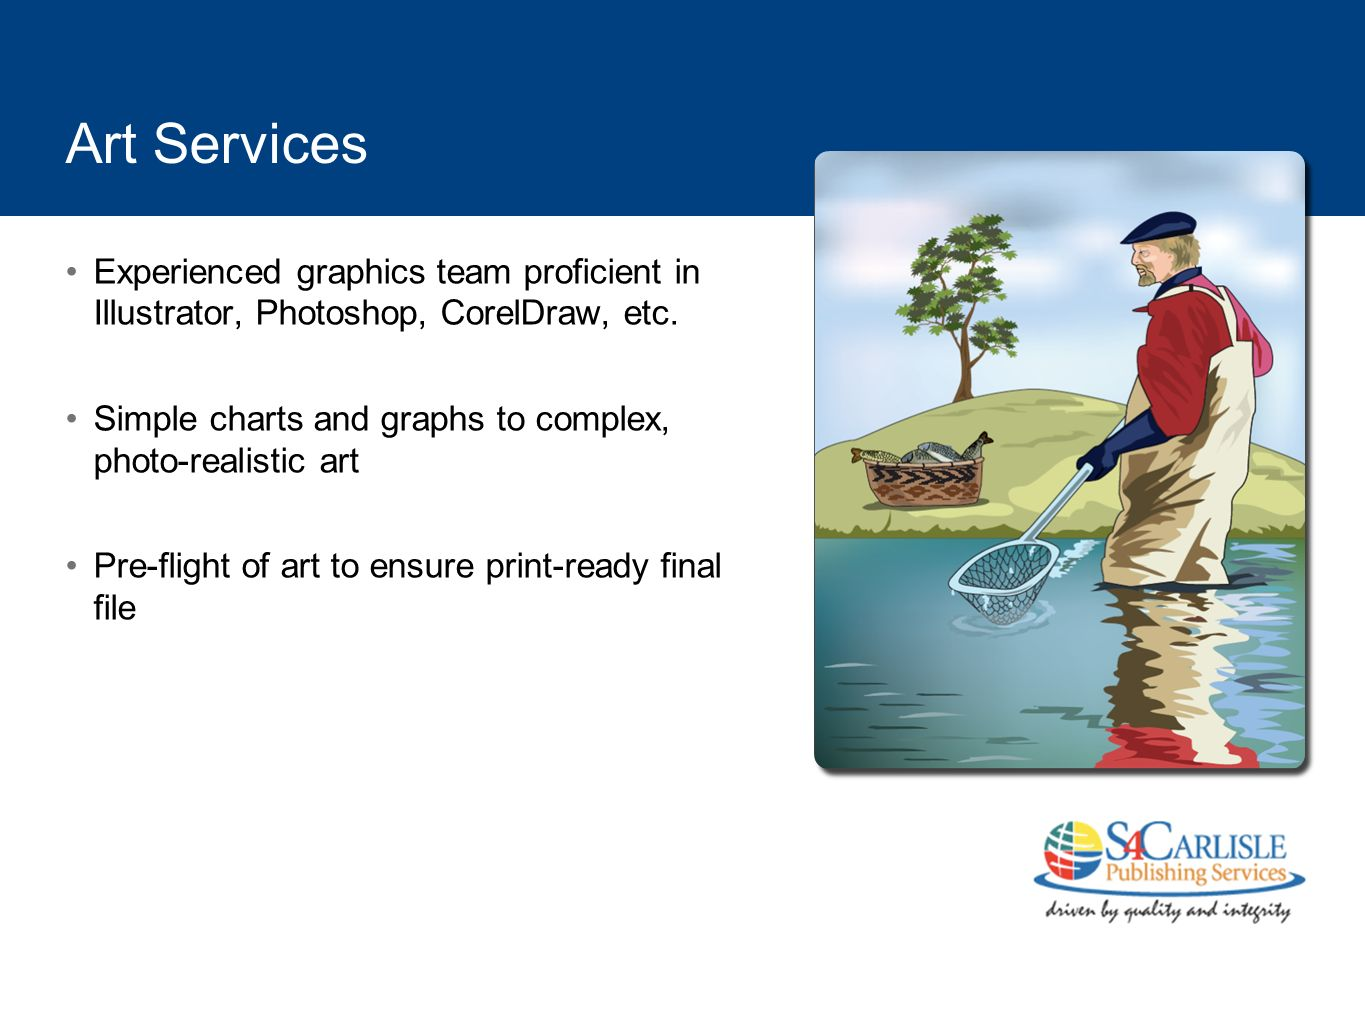 Art Services Experienced graphics team proficient in Illustrator, Photoshop, CorelDraw, etc.